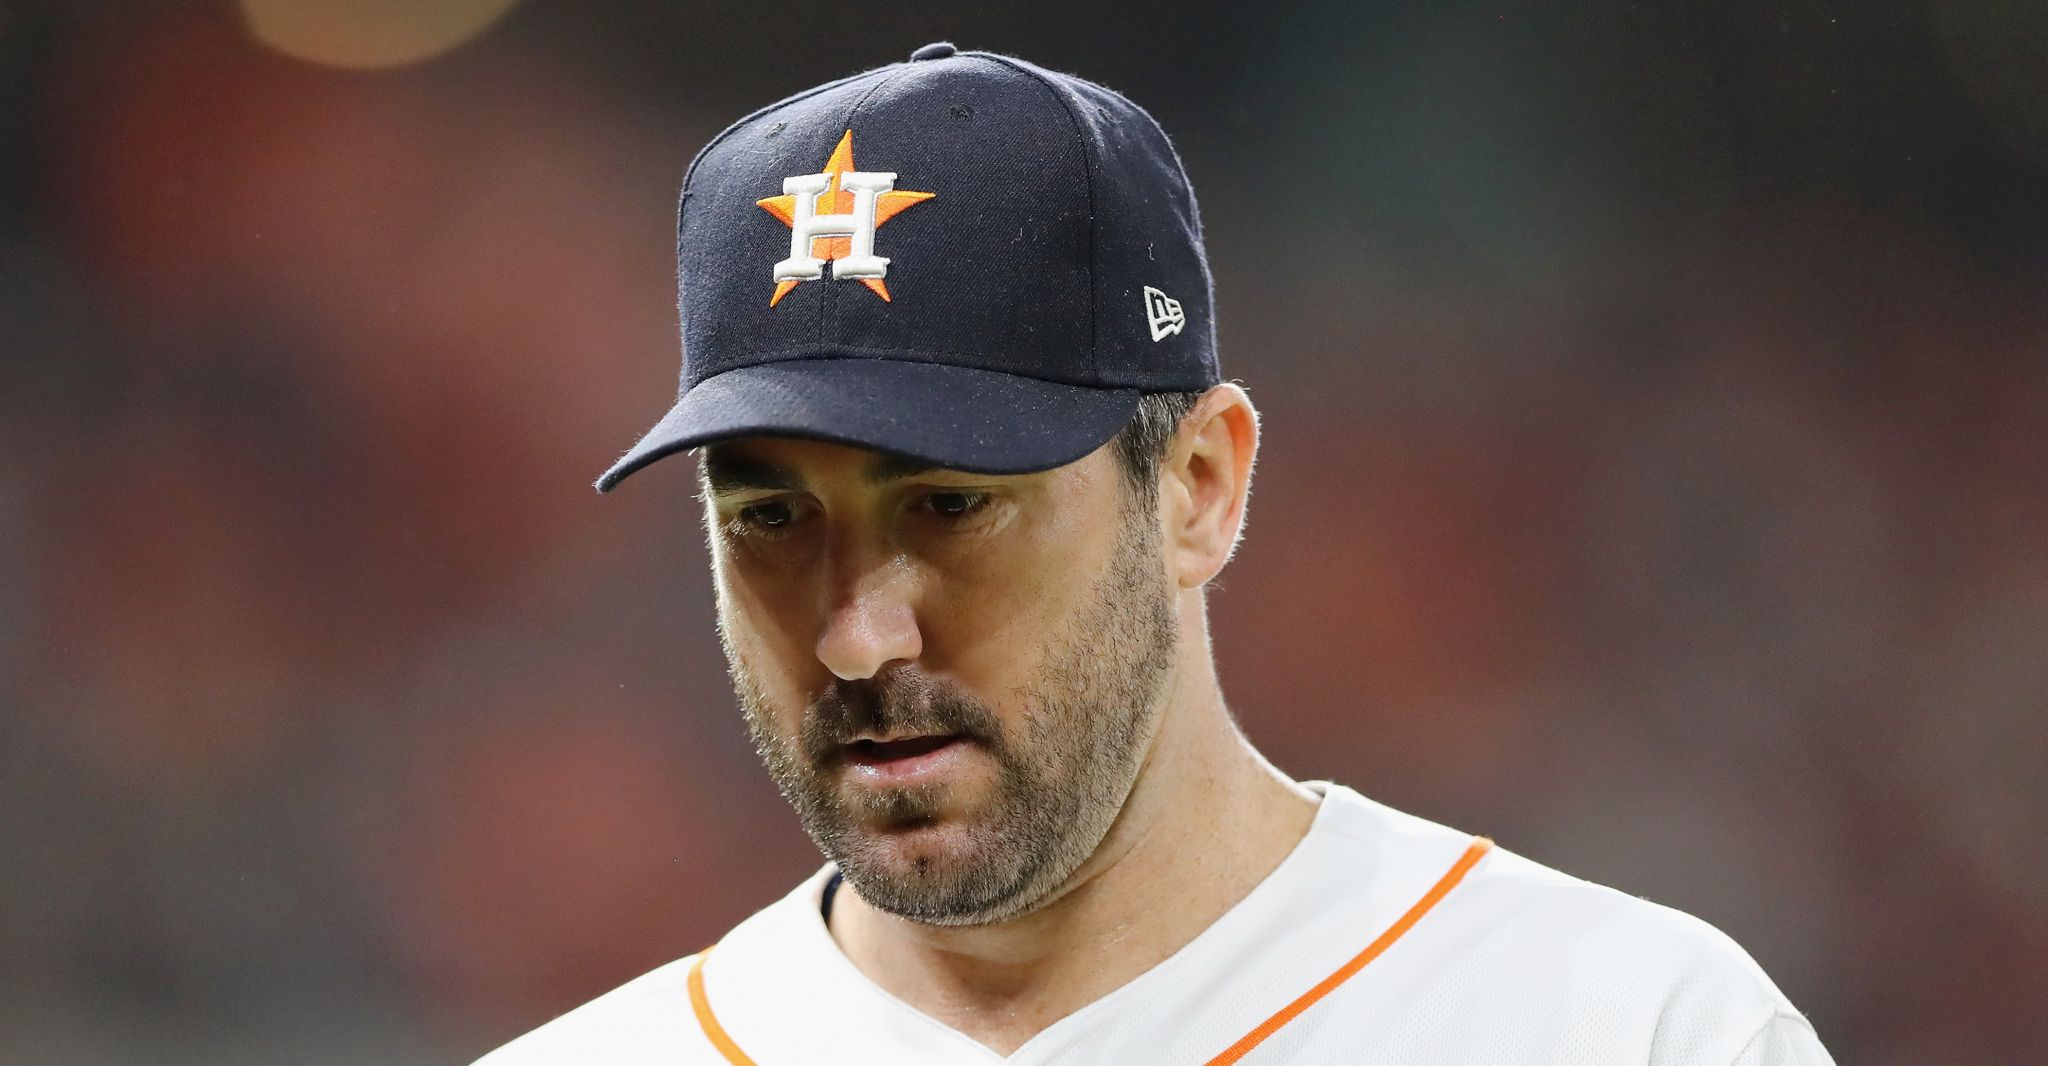 Astros' Justin Verlander places 2nd in Cy Young voting